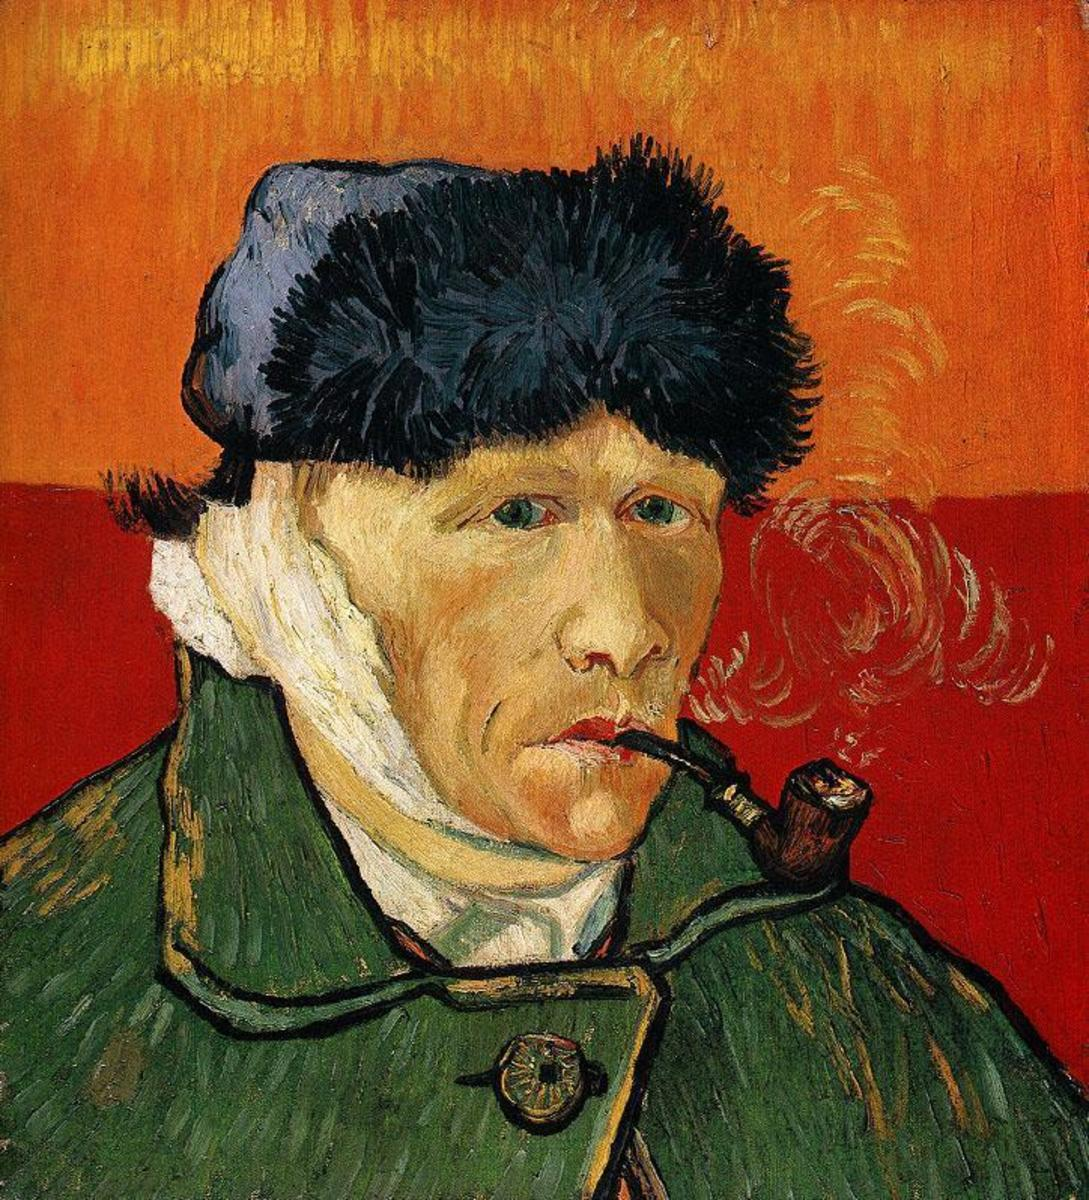 The relationship between Van Gogh & Gauguin